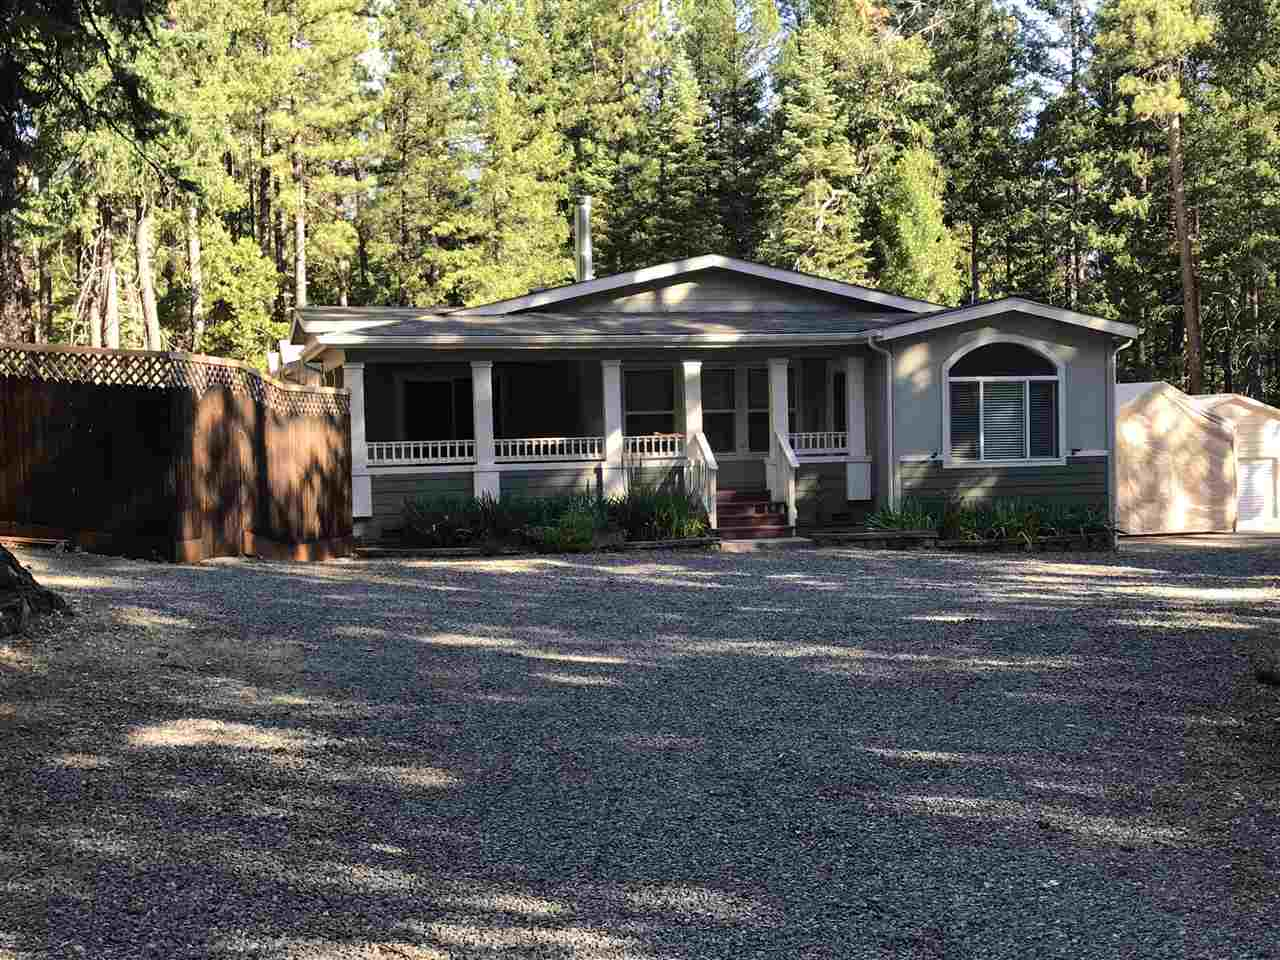 9631 French Creek Rd, Etna, CA 96027